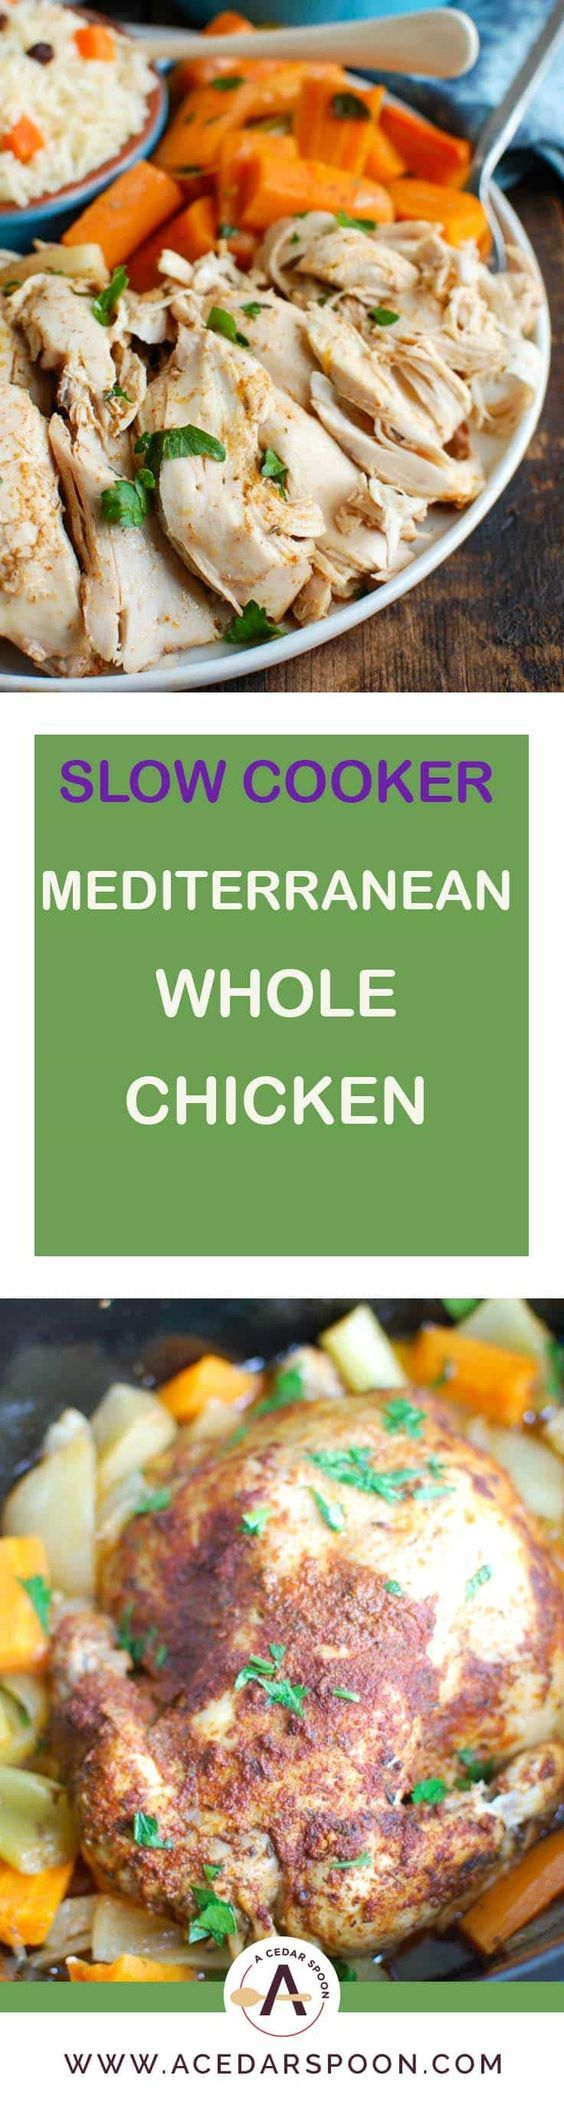 Slow Cooker Mediterranean Whole Chicken is tender, juicy and rich with Mediterranean flavors. Cooking a whole chicken in the slow cooker is not only easy but is a great way to meal plan since it can provide you with enough chicken for multiples meals during the week. // A Cedar Spoon #chicken #poultry #wholechicken #slowcooker #crockpot #Mediterranean #cinnamon #paprika #cumin #mealplanning #shreddedchicken #easymeals #recipes #cooking #easyrecipe #carrots #vegetables #easywholechicken